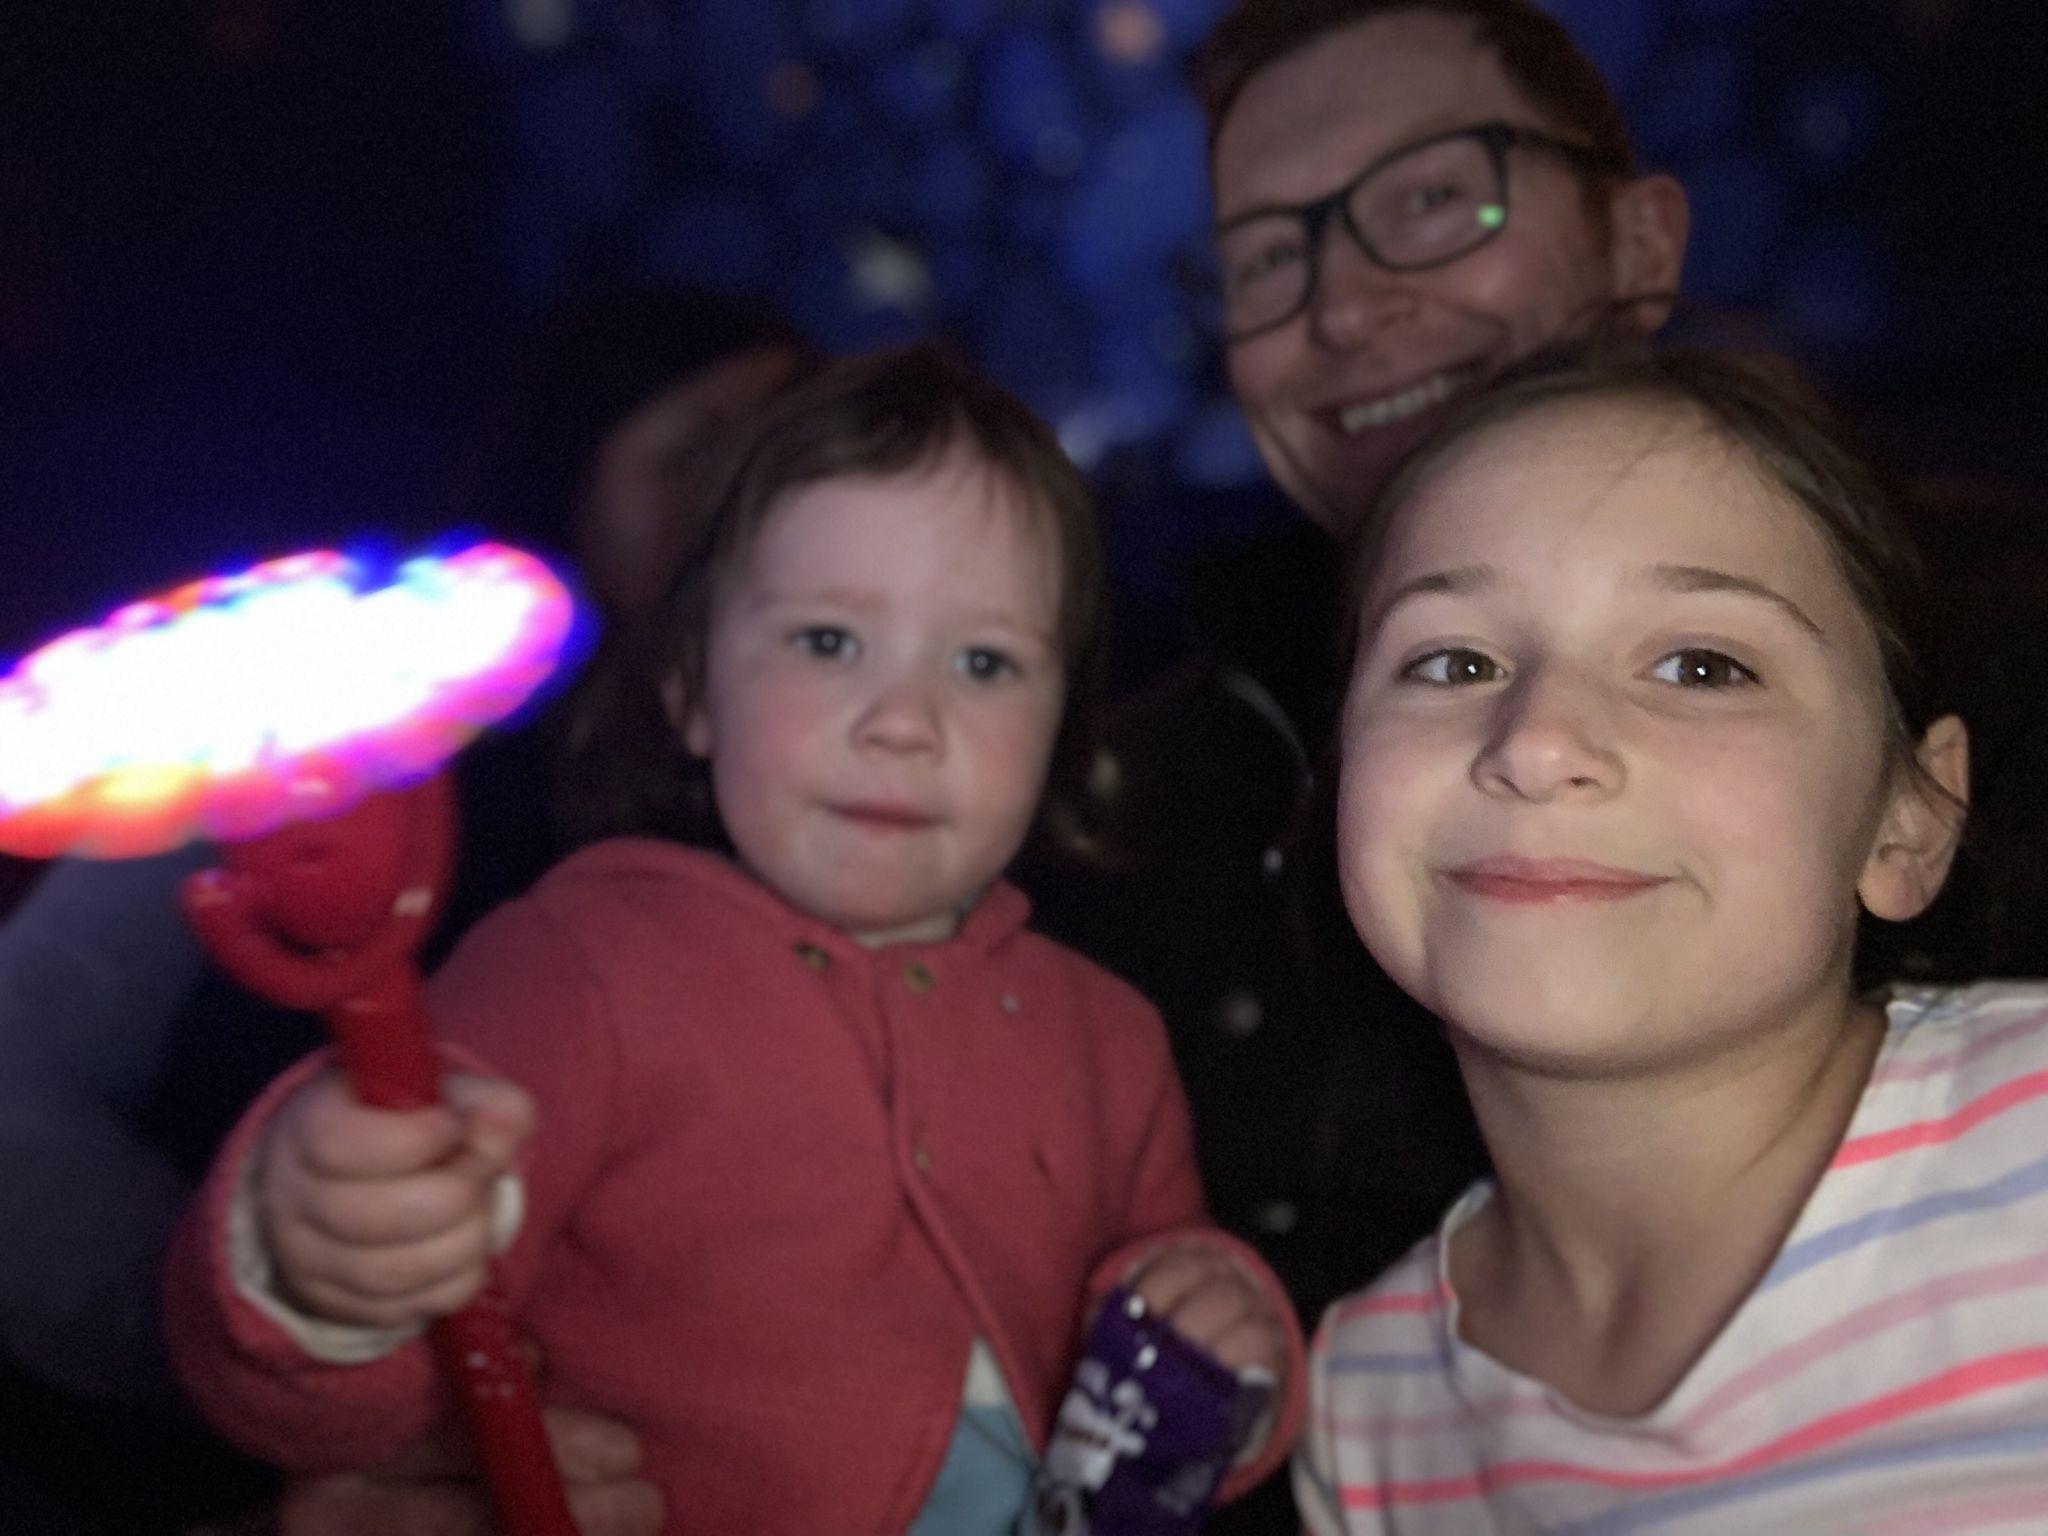 2 children and a dad enjoying watching a circus